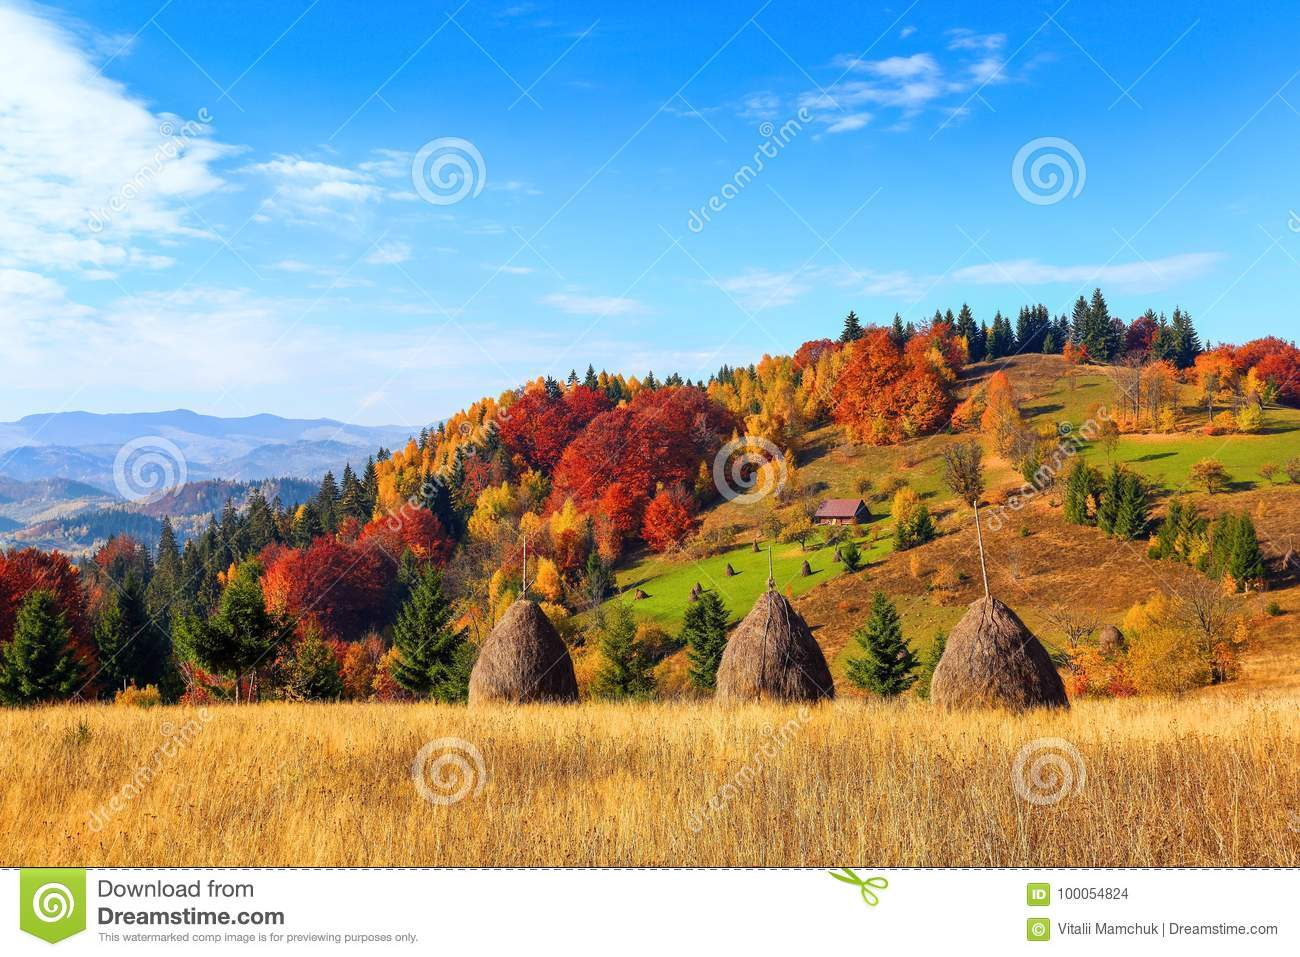 Beautiful autumn landscape with the green fair trees, orange coloured forest, high mountains and blue sky.